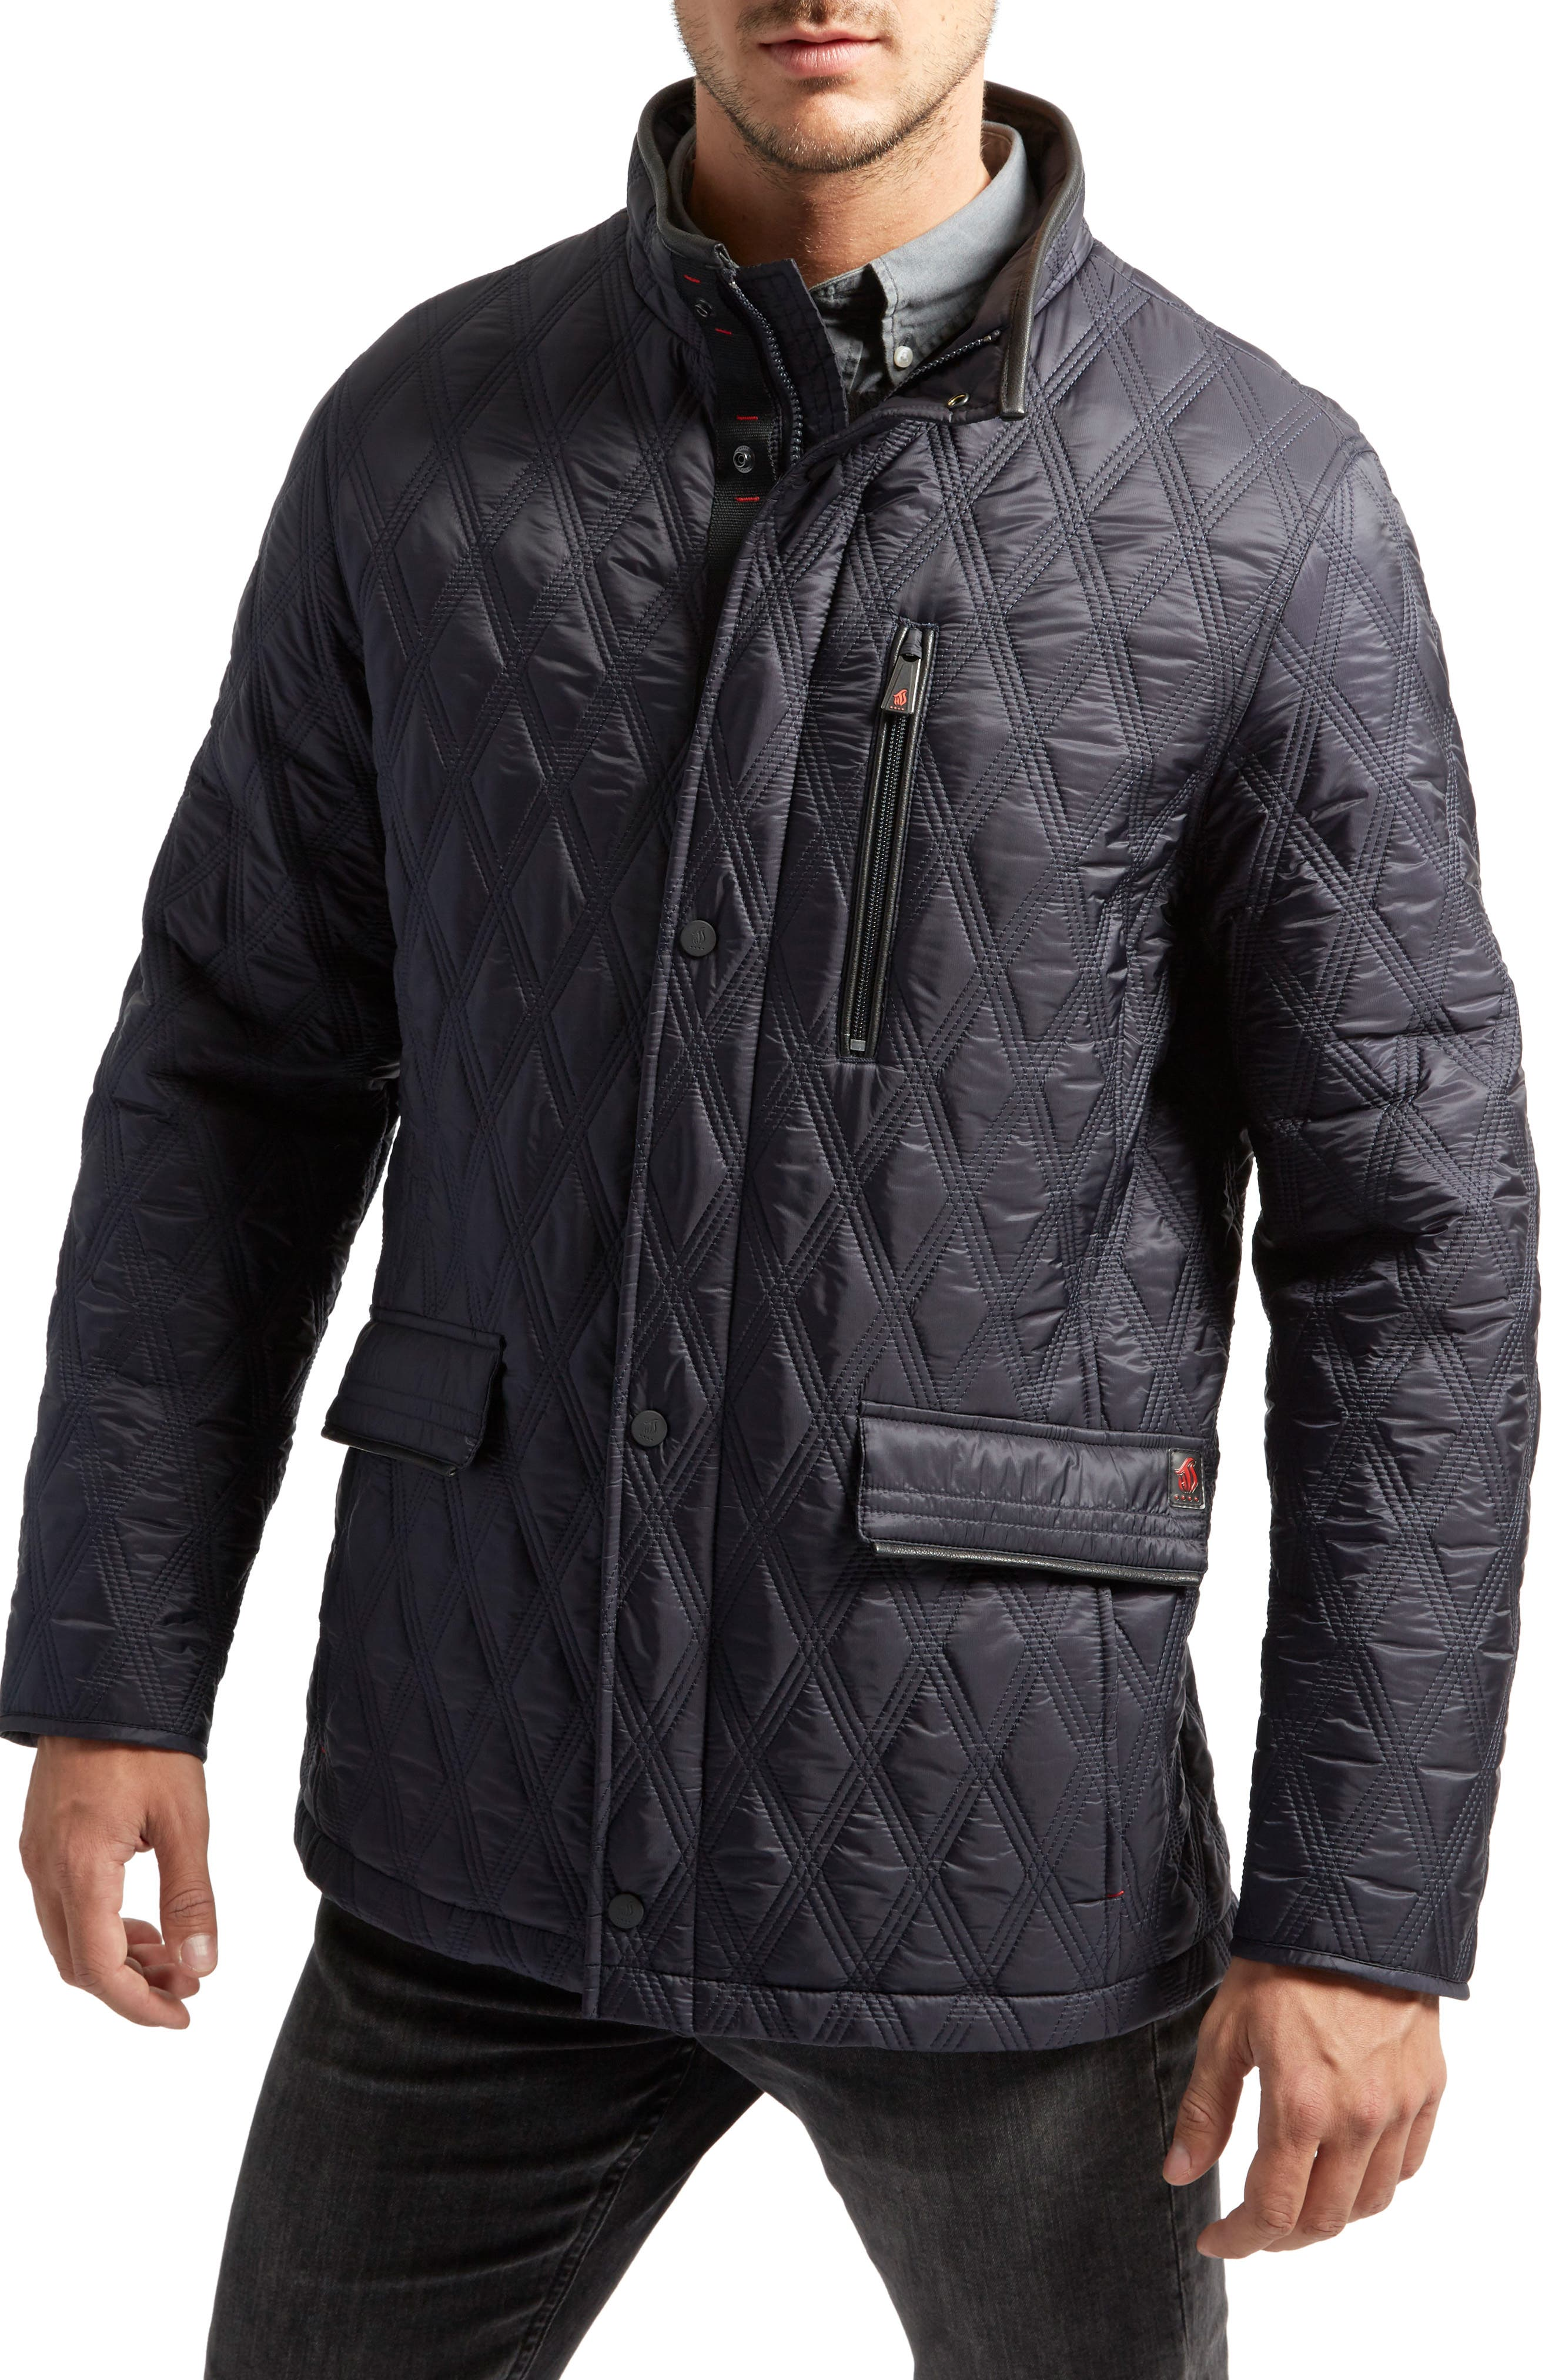 Main Image - ThermoLUXE® Prichard Triple Stitch Quilted Heat System Jacket